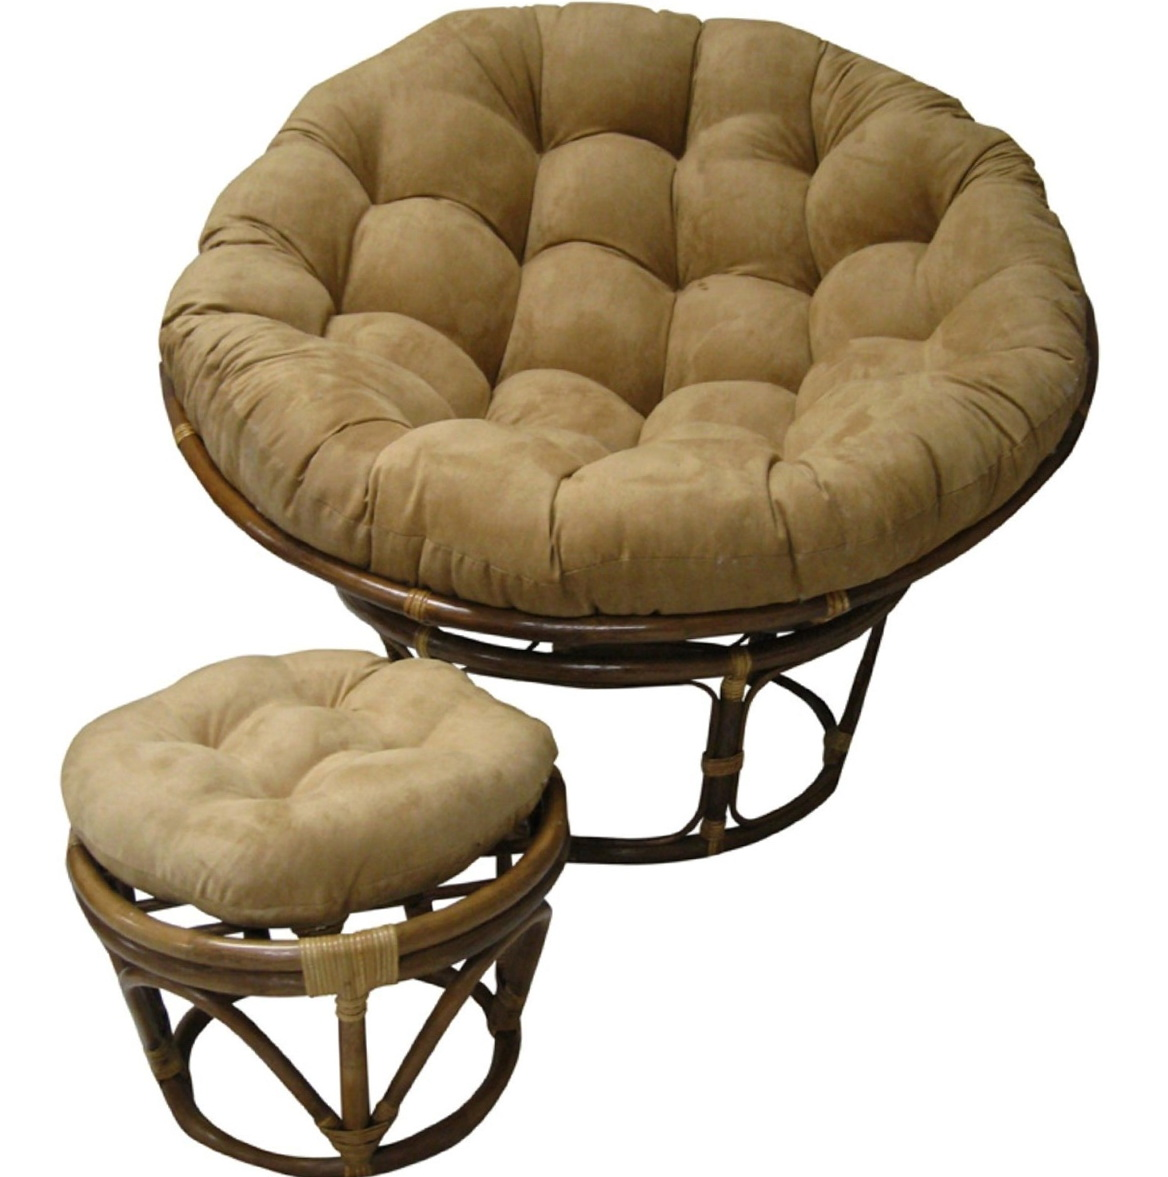 Cushion Sale Outdoor Papasan Cushion Sale Home Design Ideas